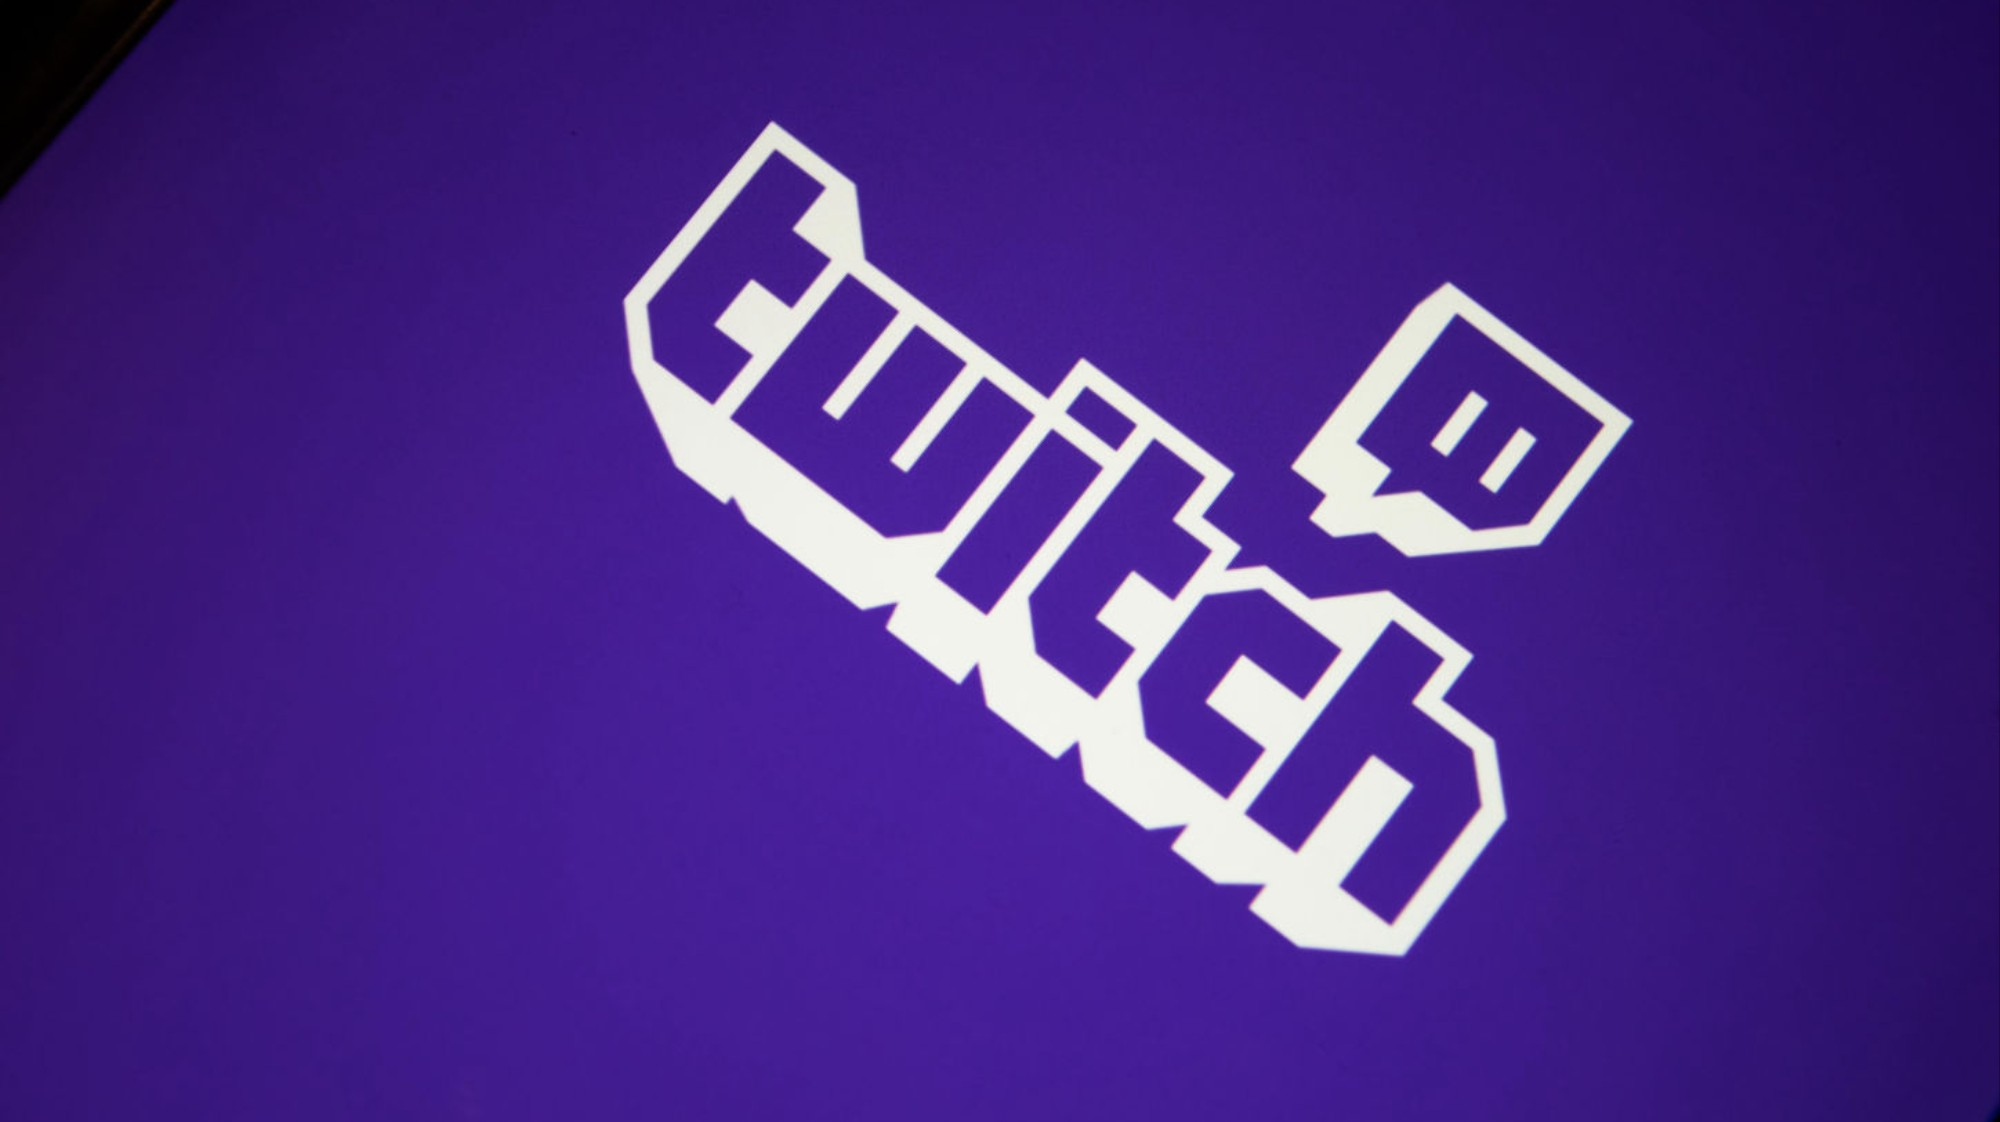 Twitch Flooded with Streams of 'Game of Thrones', Porn, and